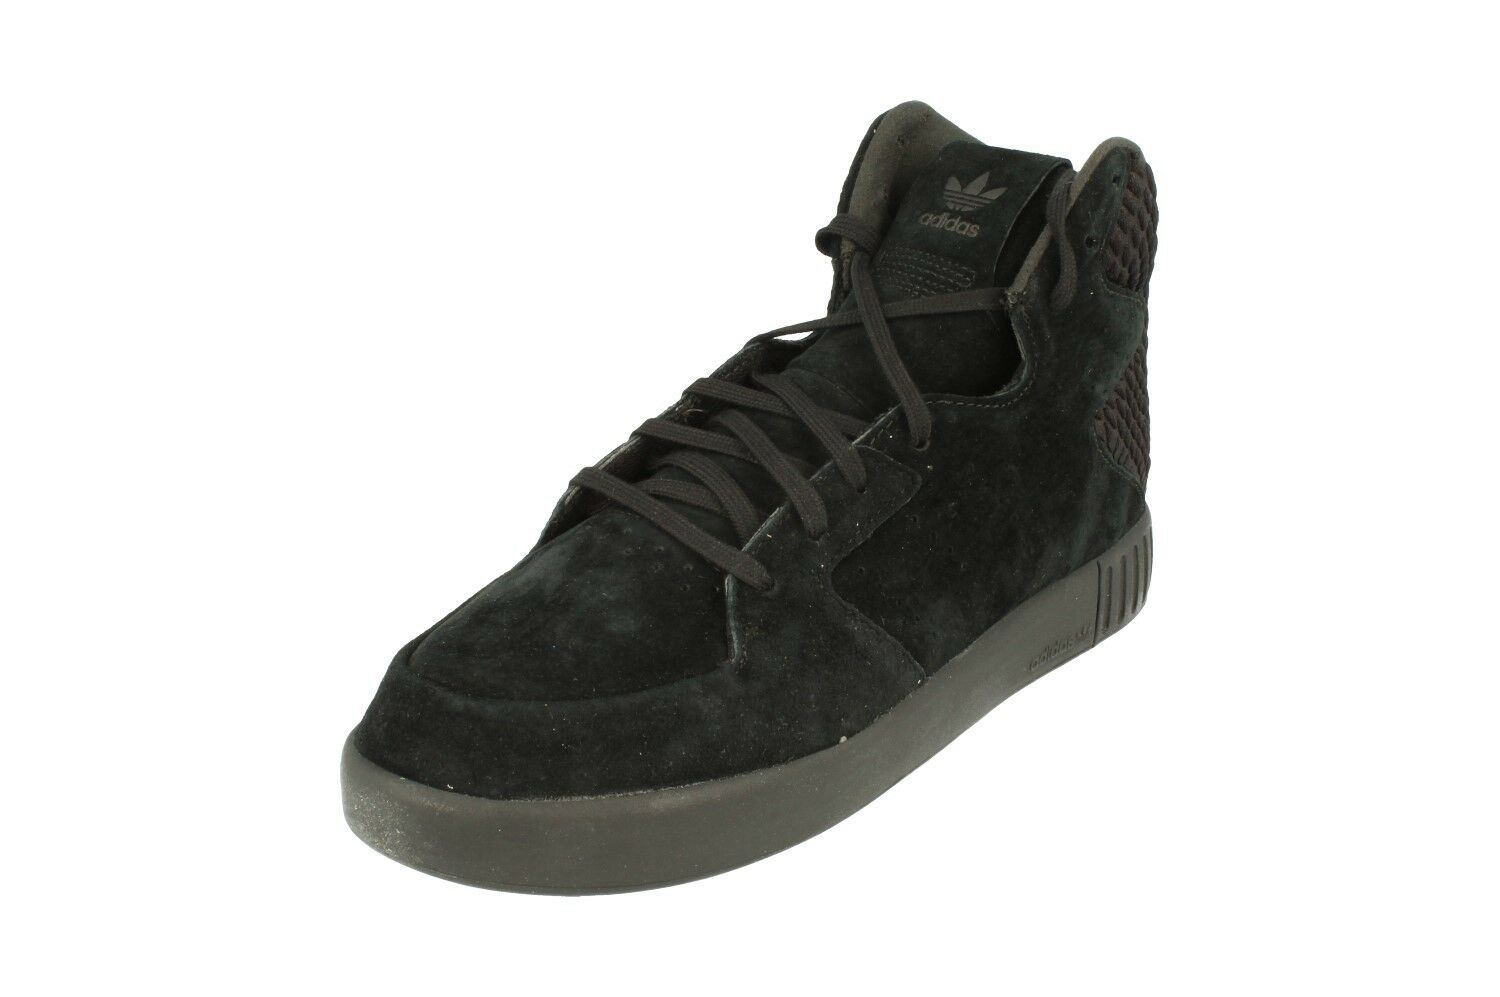 Adidas Originals Tubular Invader 2.0 Mens Hi Top Trainers Sneakers S80400